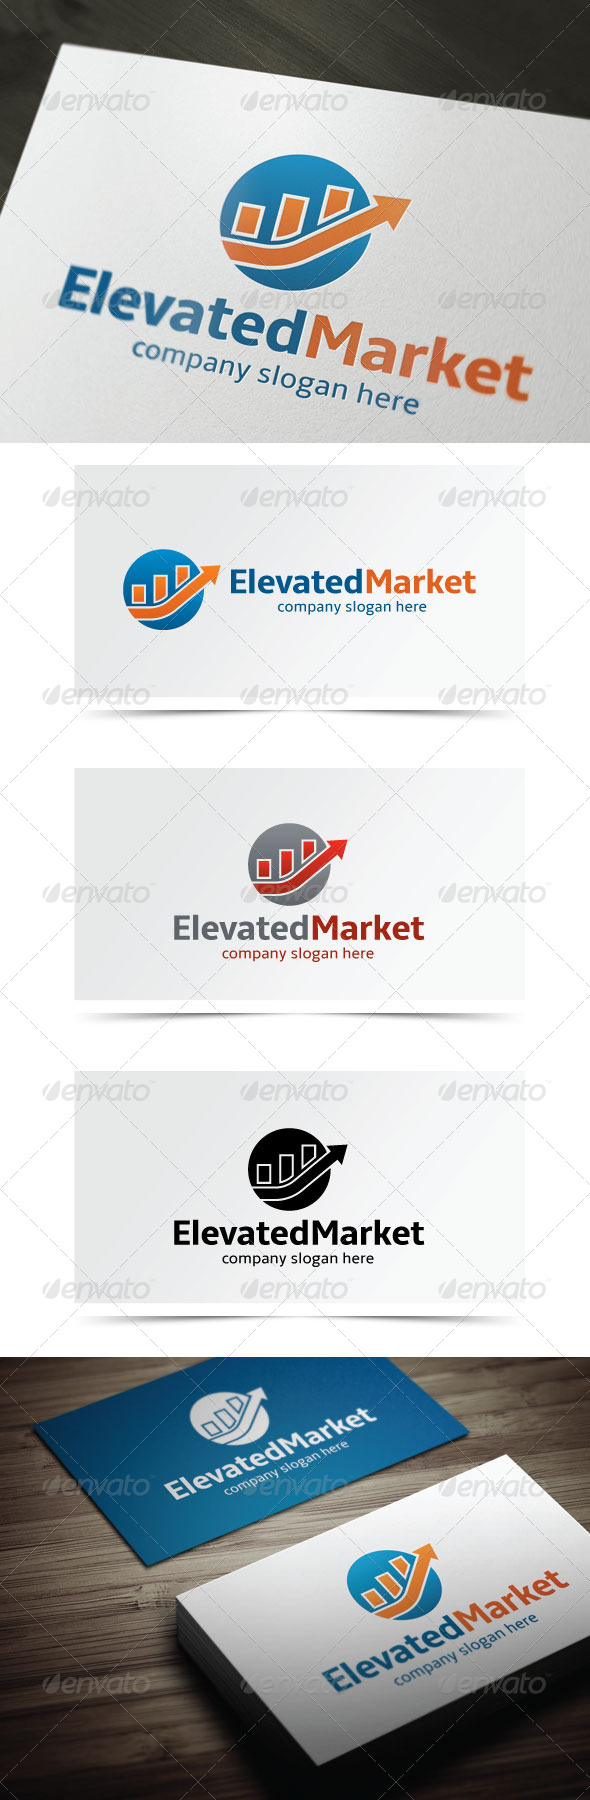 GraphicRiver Elevated Market 5468663